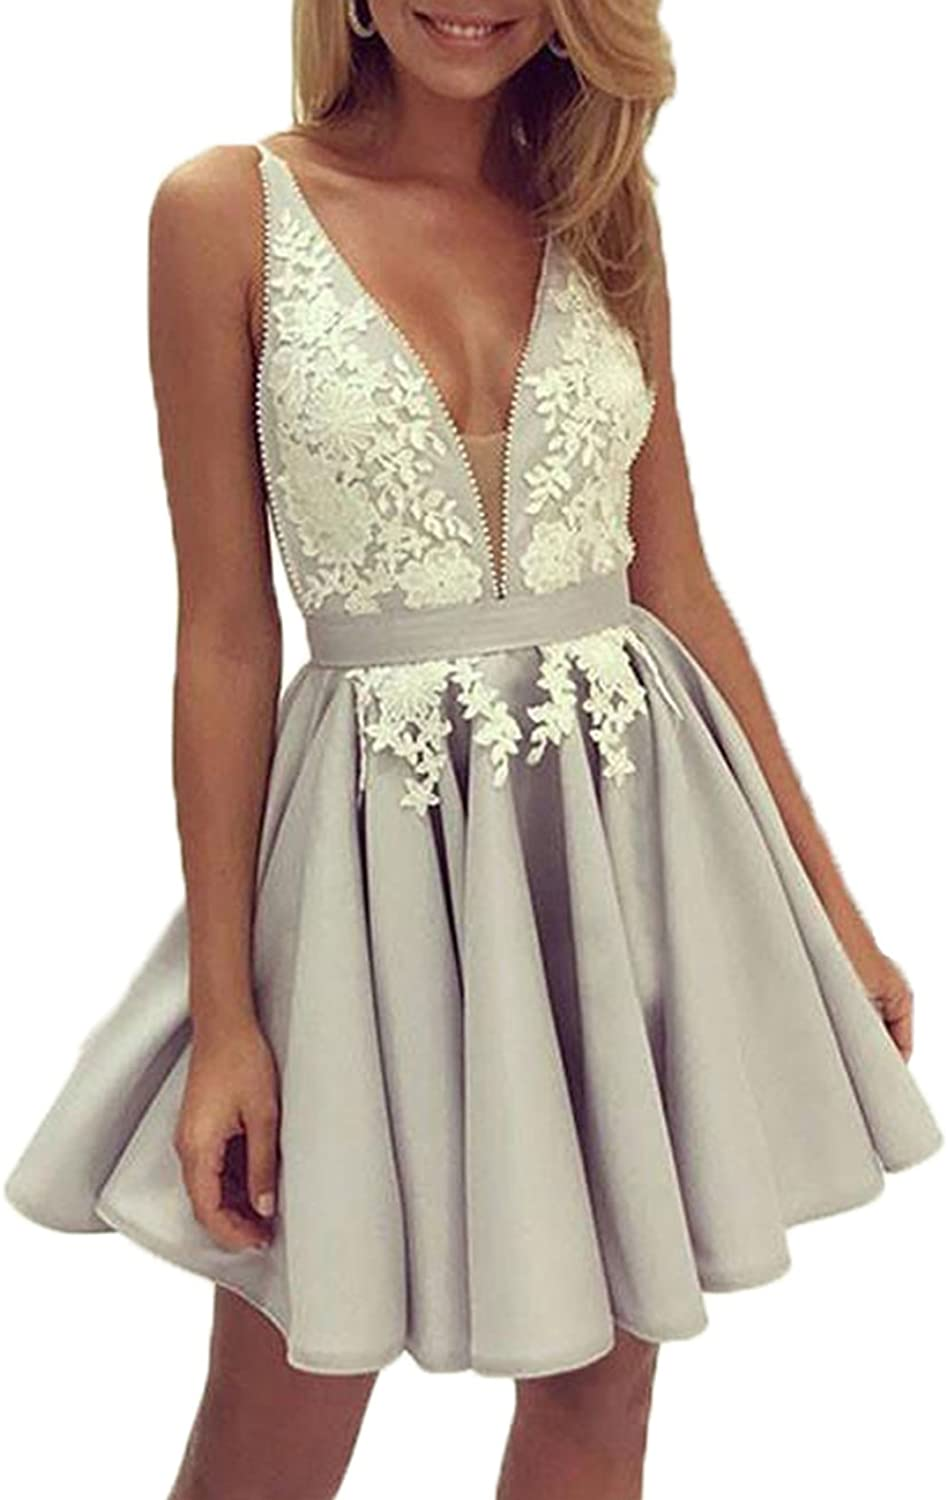 Libaosha Sexy VNeck Lace Appliqued Short Homecoming Dresses